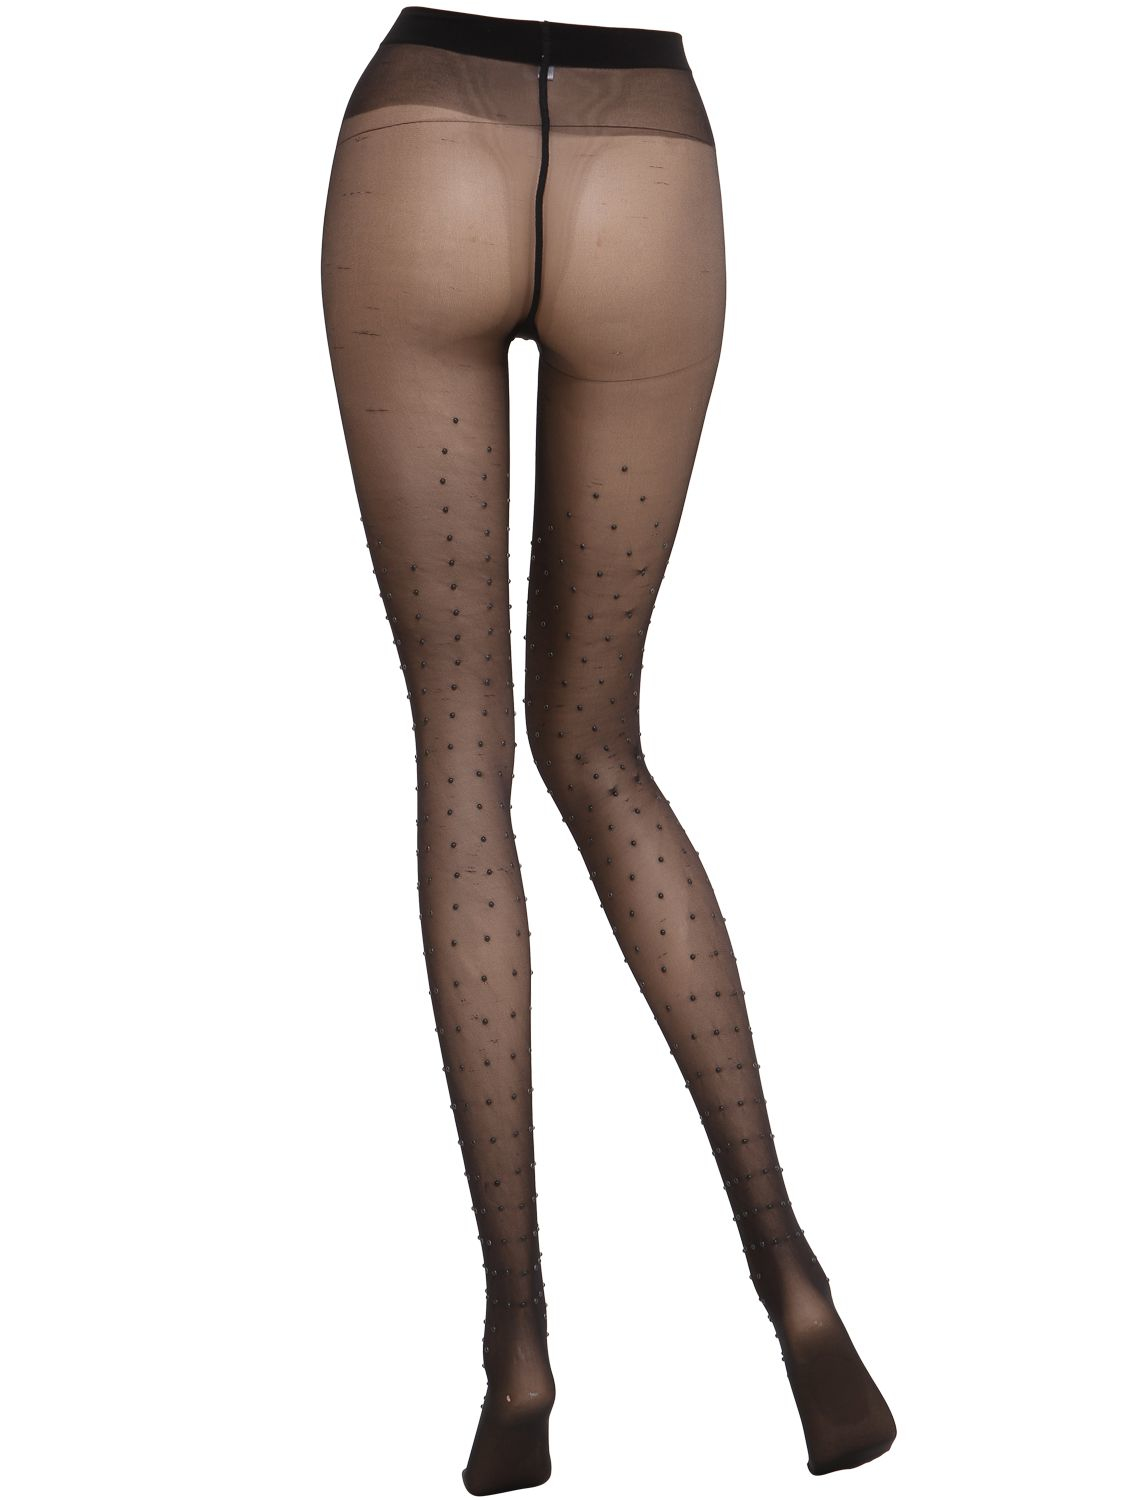 Free Shipping Factory Outlet Emily Embellished 66 Denier Tights - Black Wolford Low Price For Sale Cheap Sale Sneakernews Clearance Best 2018 New Cheap Price BuqGwXriq